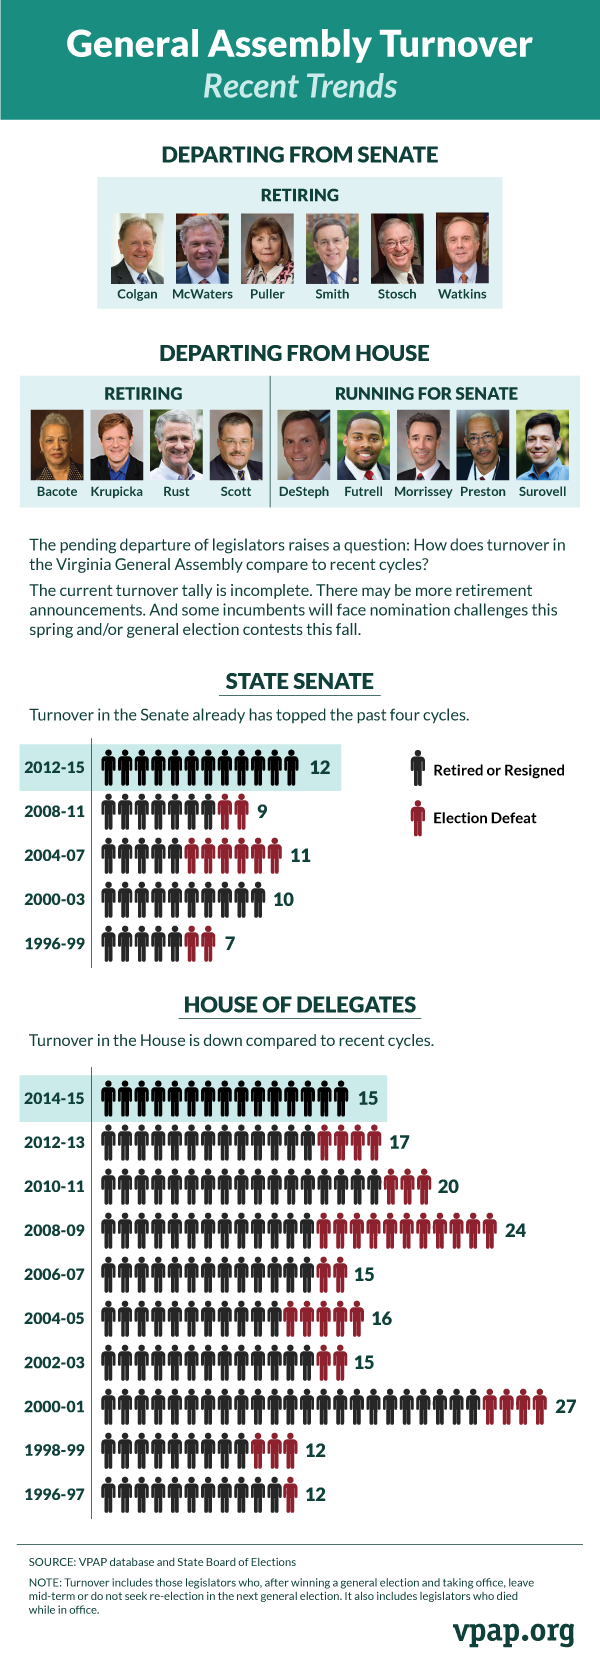 General Assembly Turnover: Recent Trends